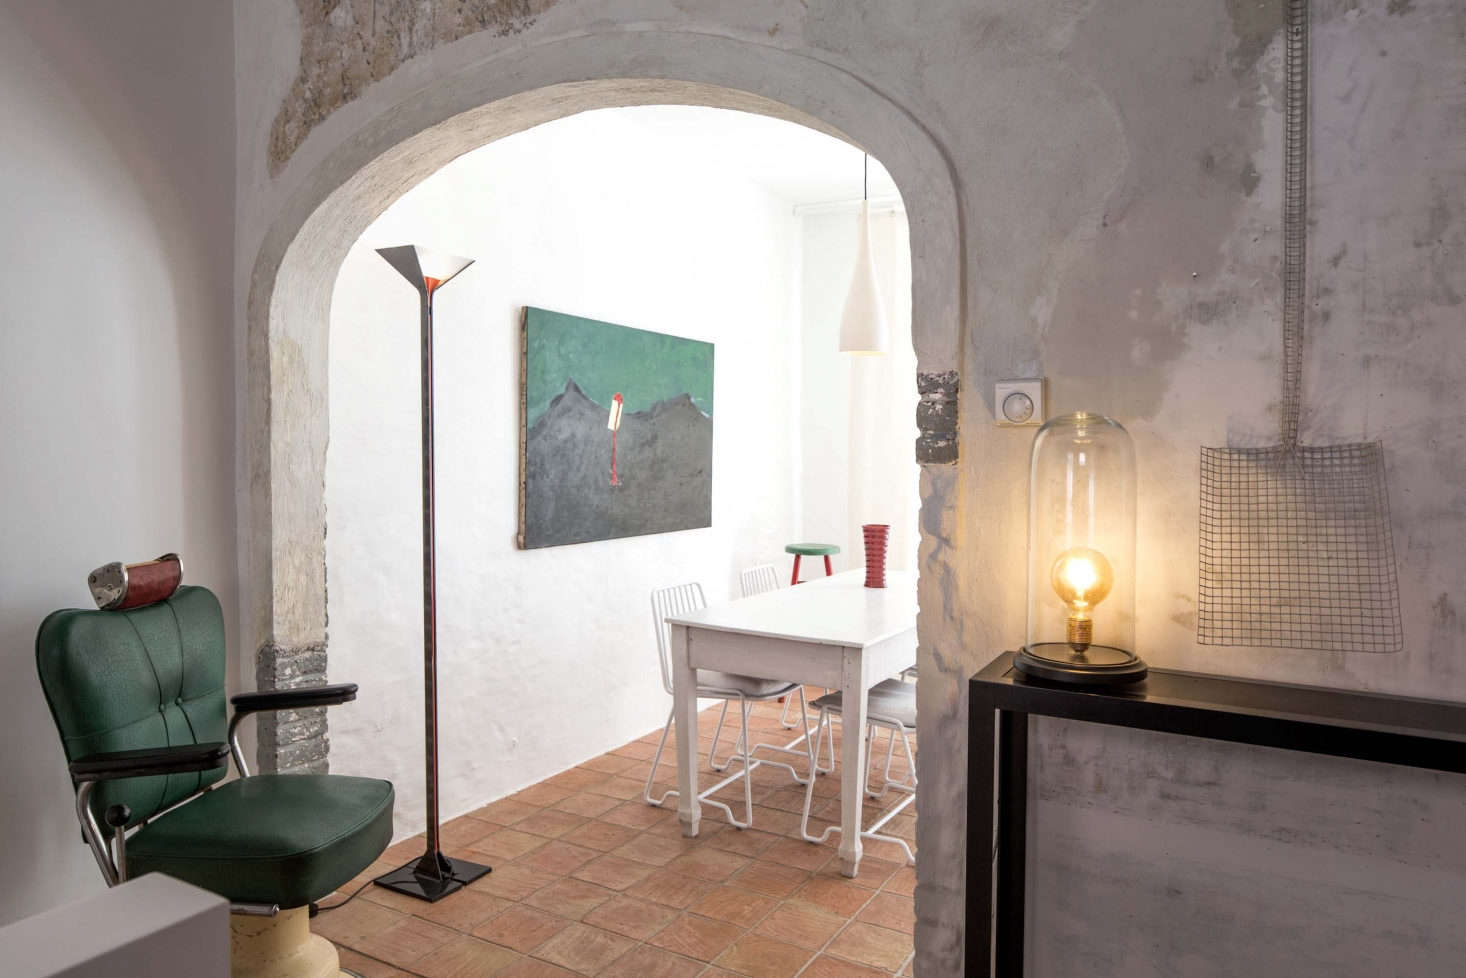 Through the arched doorway is a vintage green leather barber stool, a bell jar table lamp, and Shovel Wire Netting Sculpture by Terry Powell for Serax.